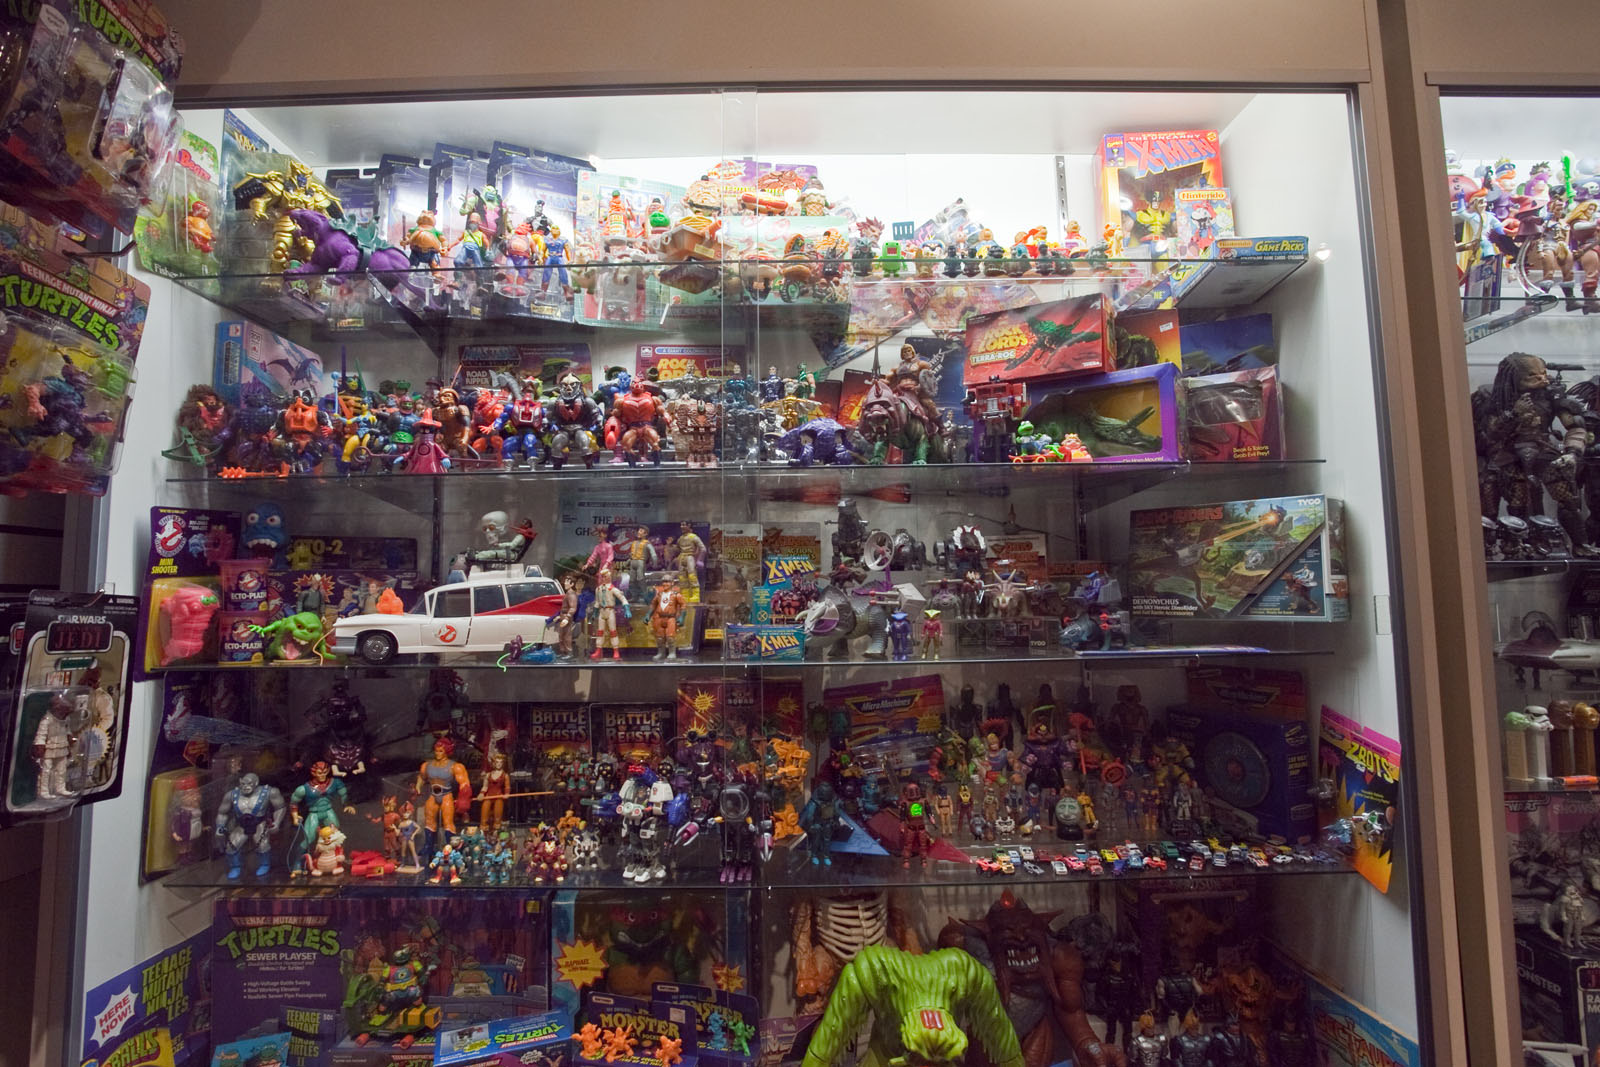 80 Toy Action Figure Shelves - chriscollection2_Most Inspiring 80 Toy Action Figure Shelves - chriscollection2  Pic_692885.jpg